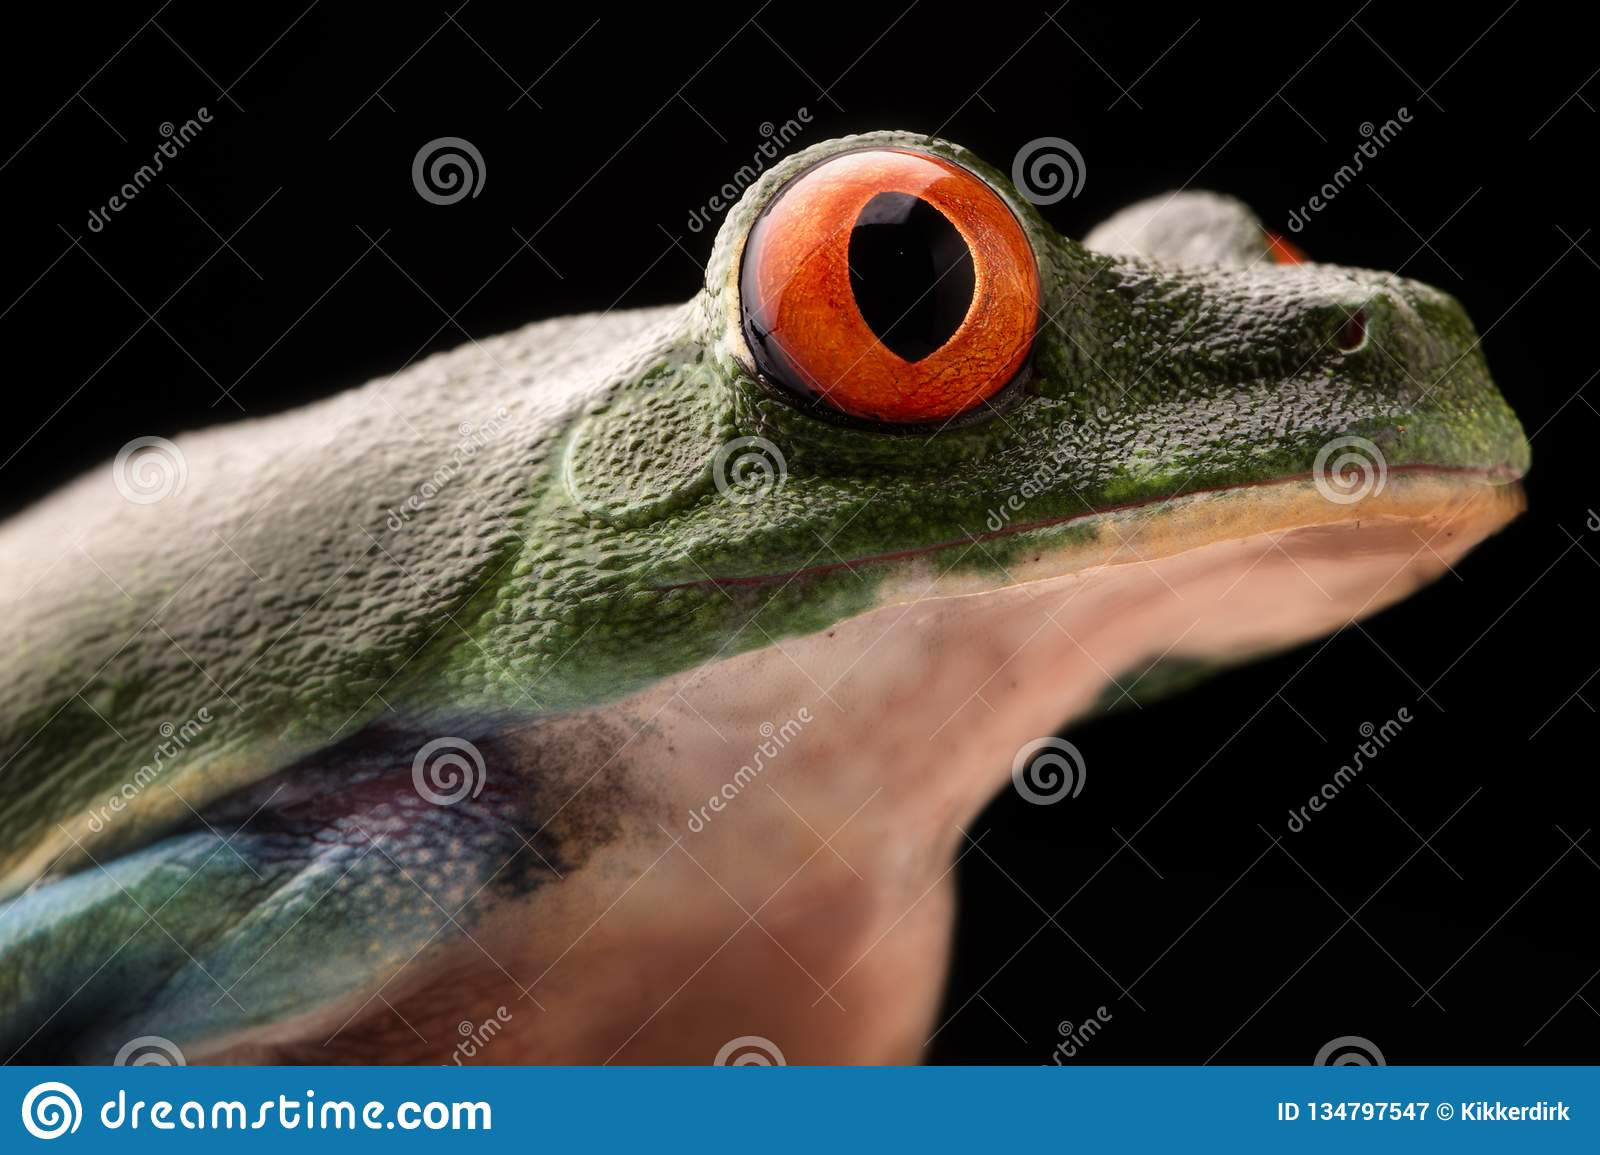 Eye of the red eyed tree frog